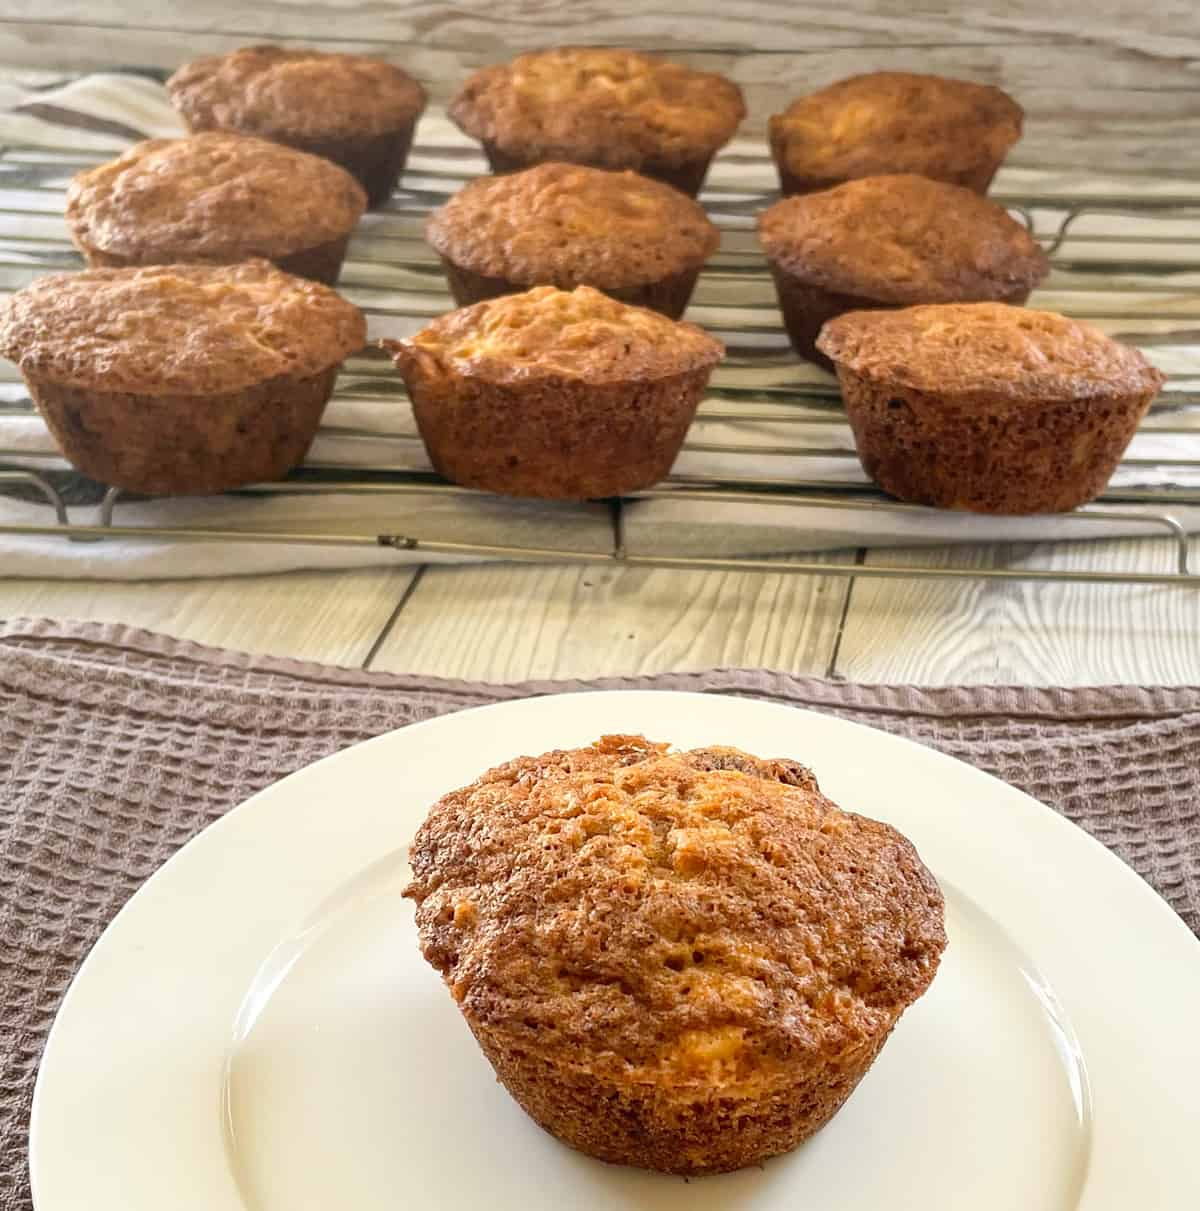 Muffins cooling on a wire rack and a plate with a single warm muffin